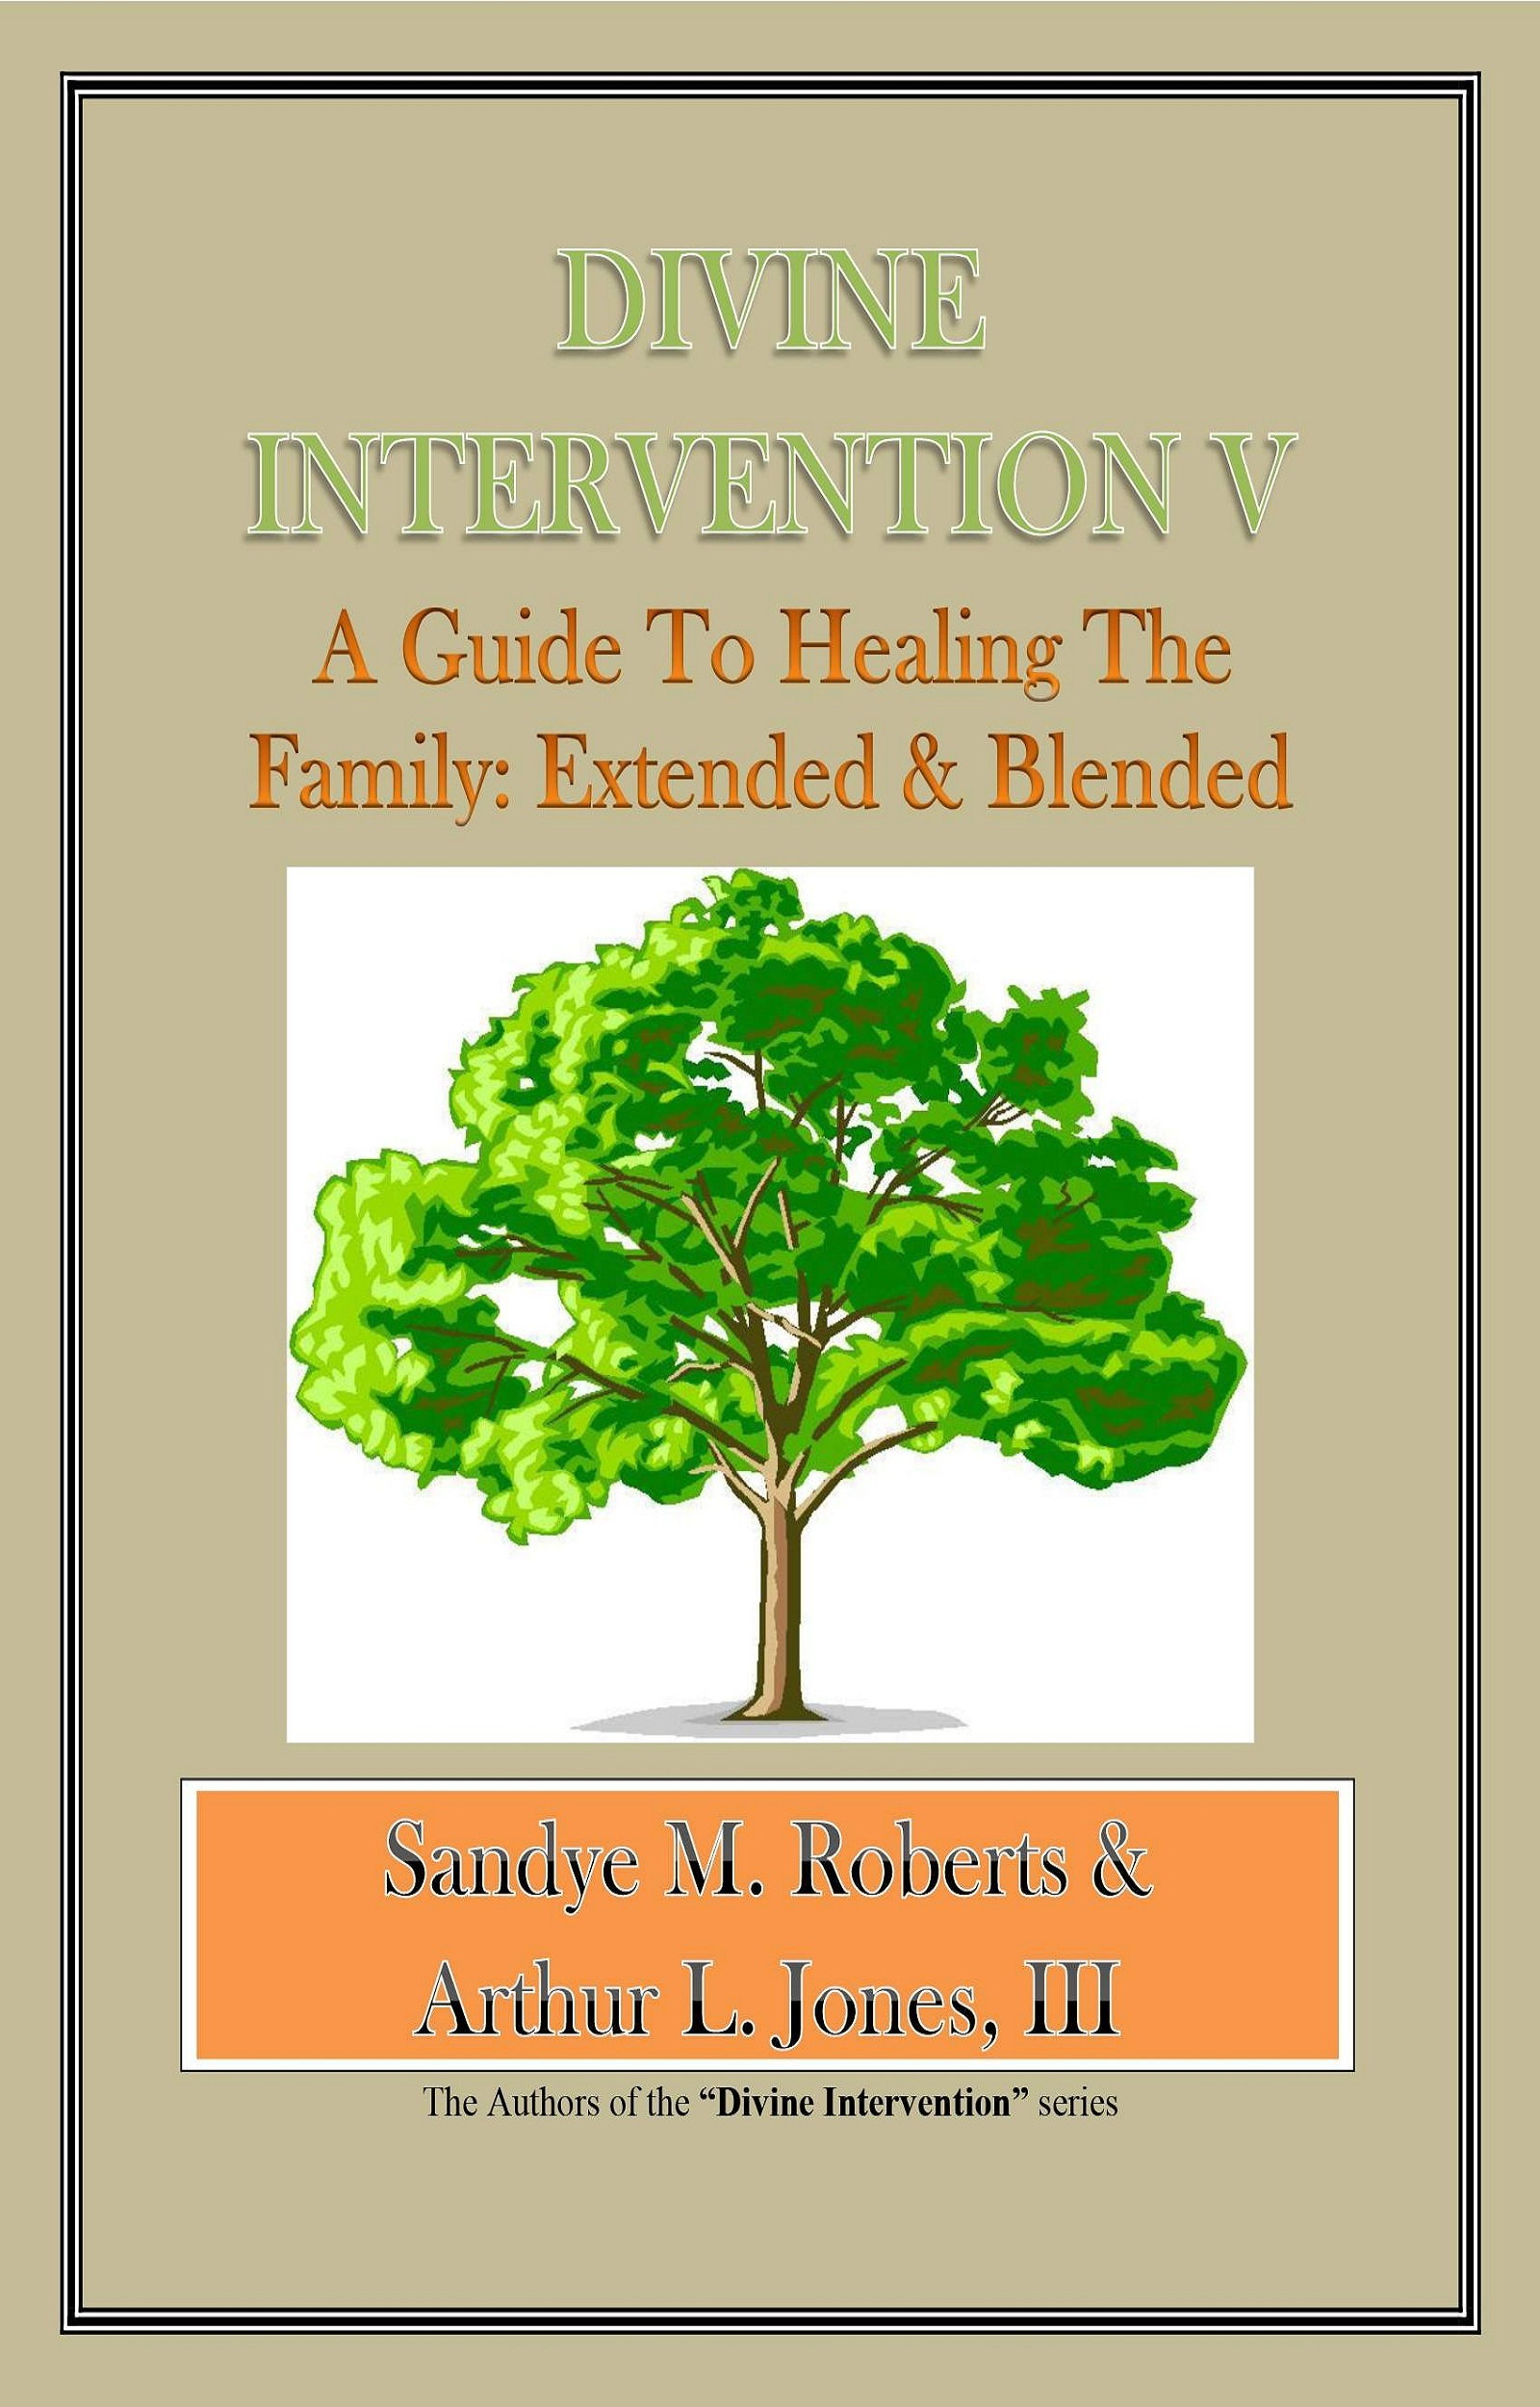 Divine Intervention V: A Guide To Healing The Family: Extended & Blended